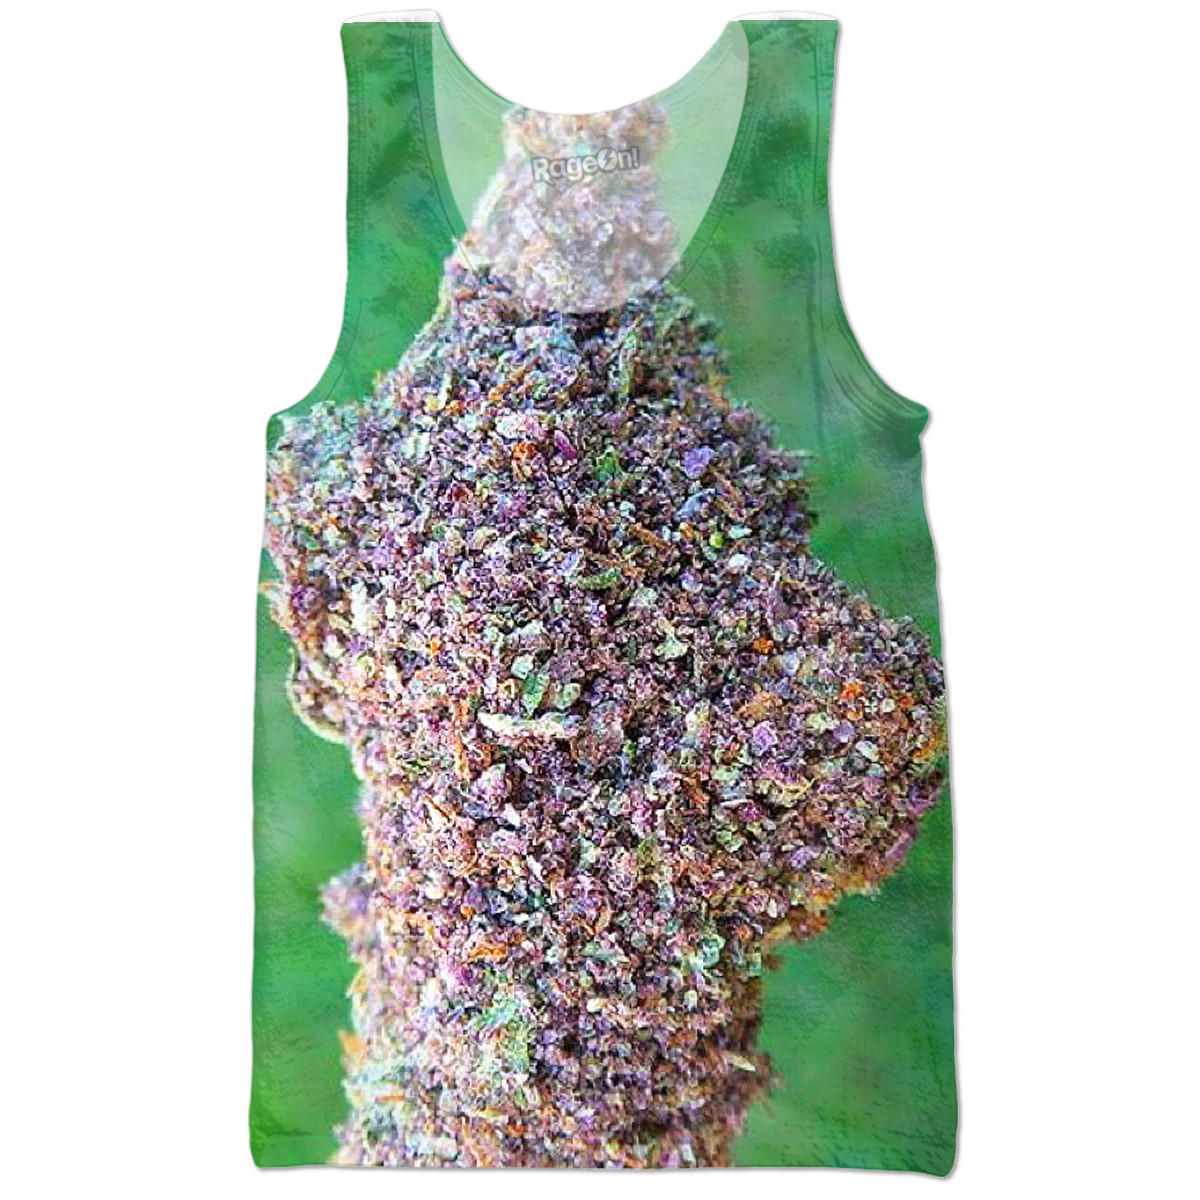 Weed Nugget Tank Top. From RageOn!